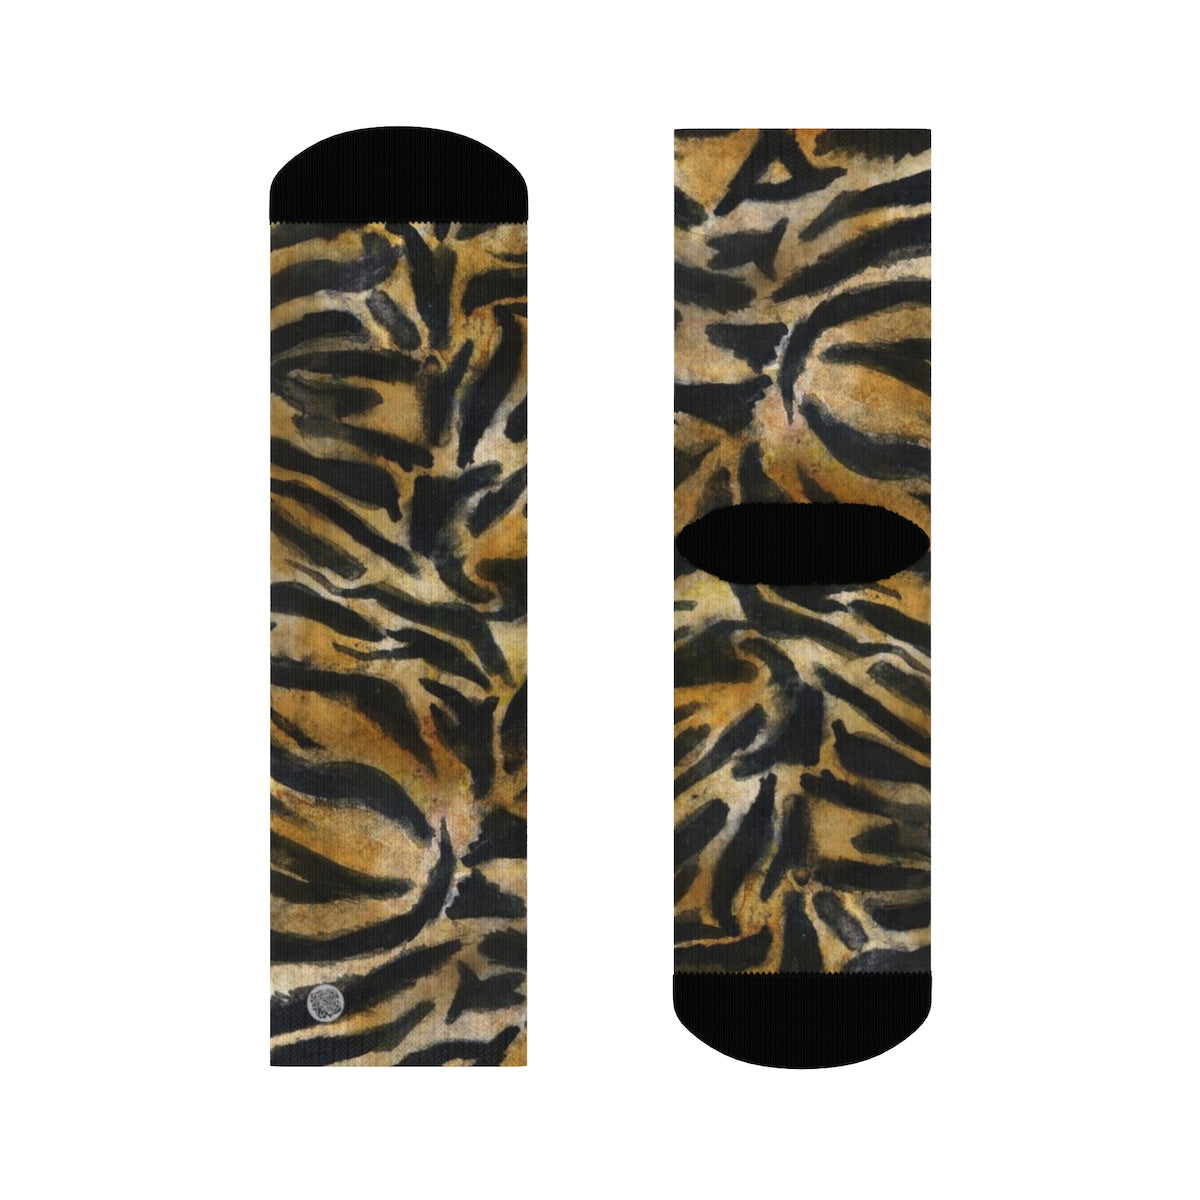 Tiger Stripe Print Unisex Socks, Orange Tiger Animal Print Women's/ Men's Luxury Socks-Socks-3/4 Crew-Heidi Kimura Art LLC